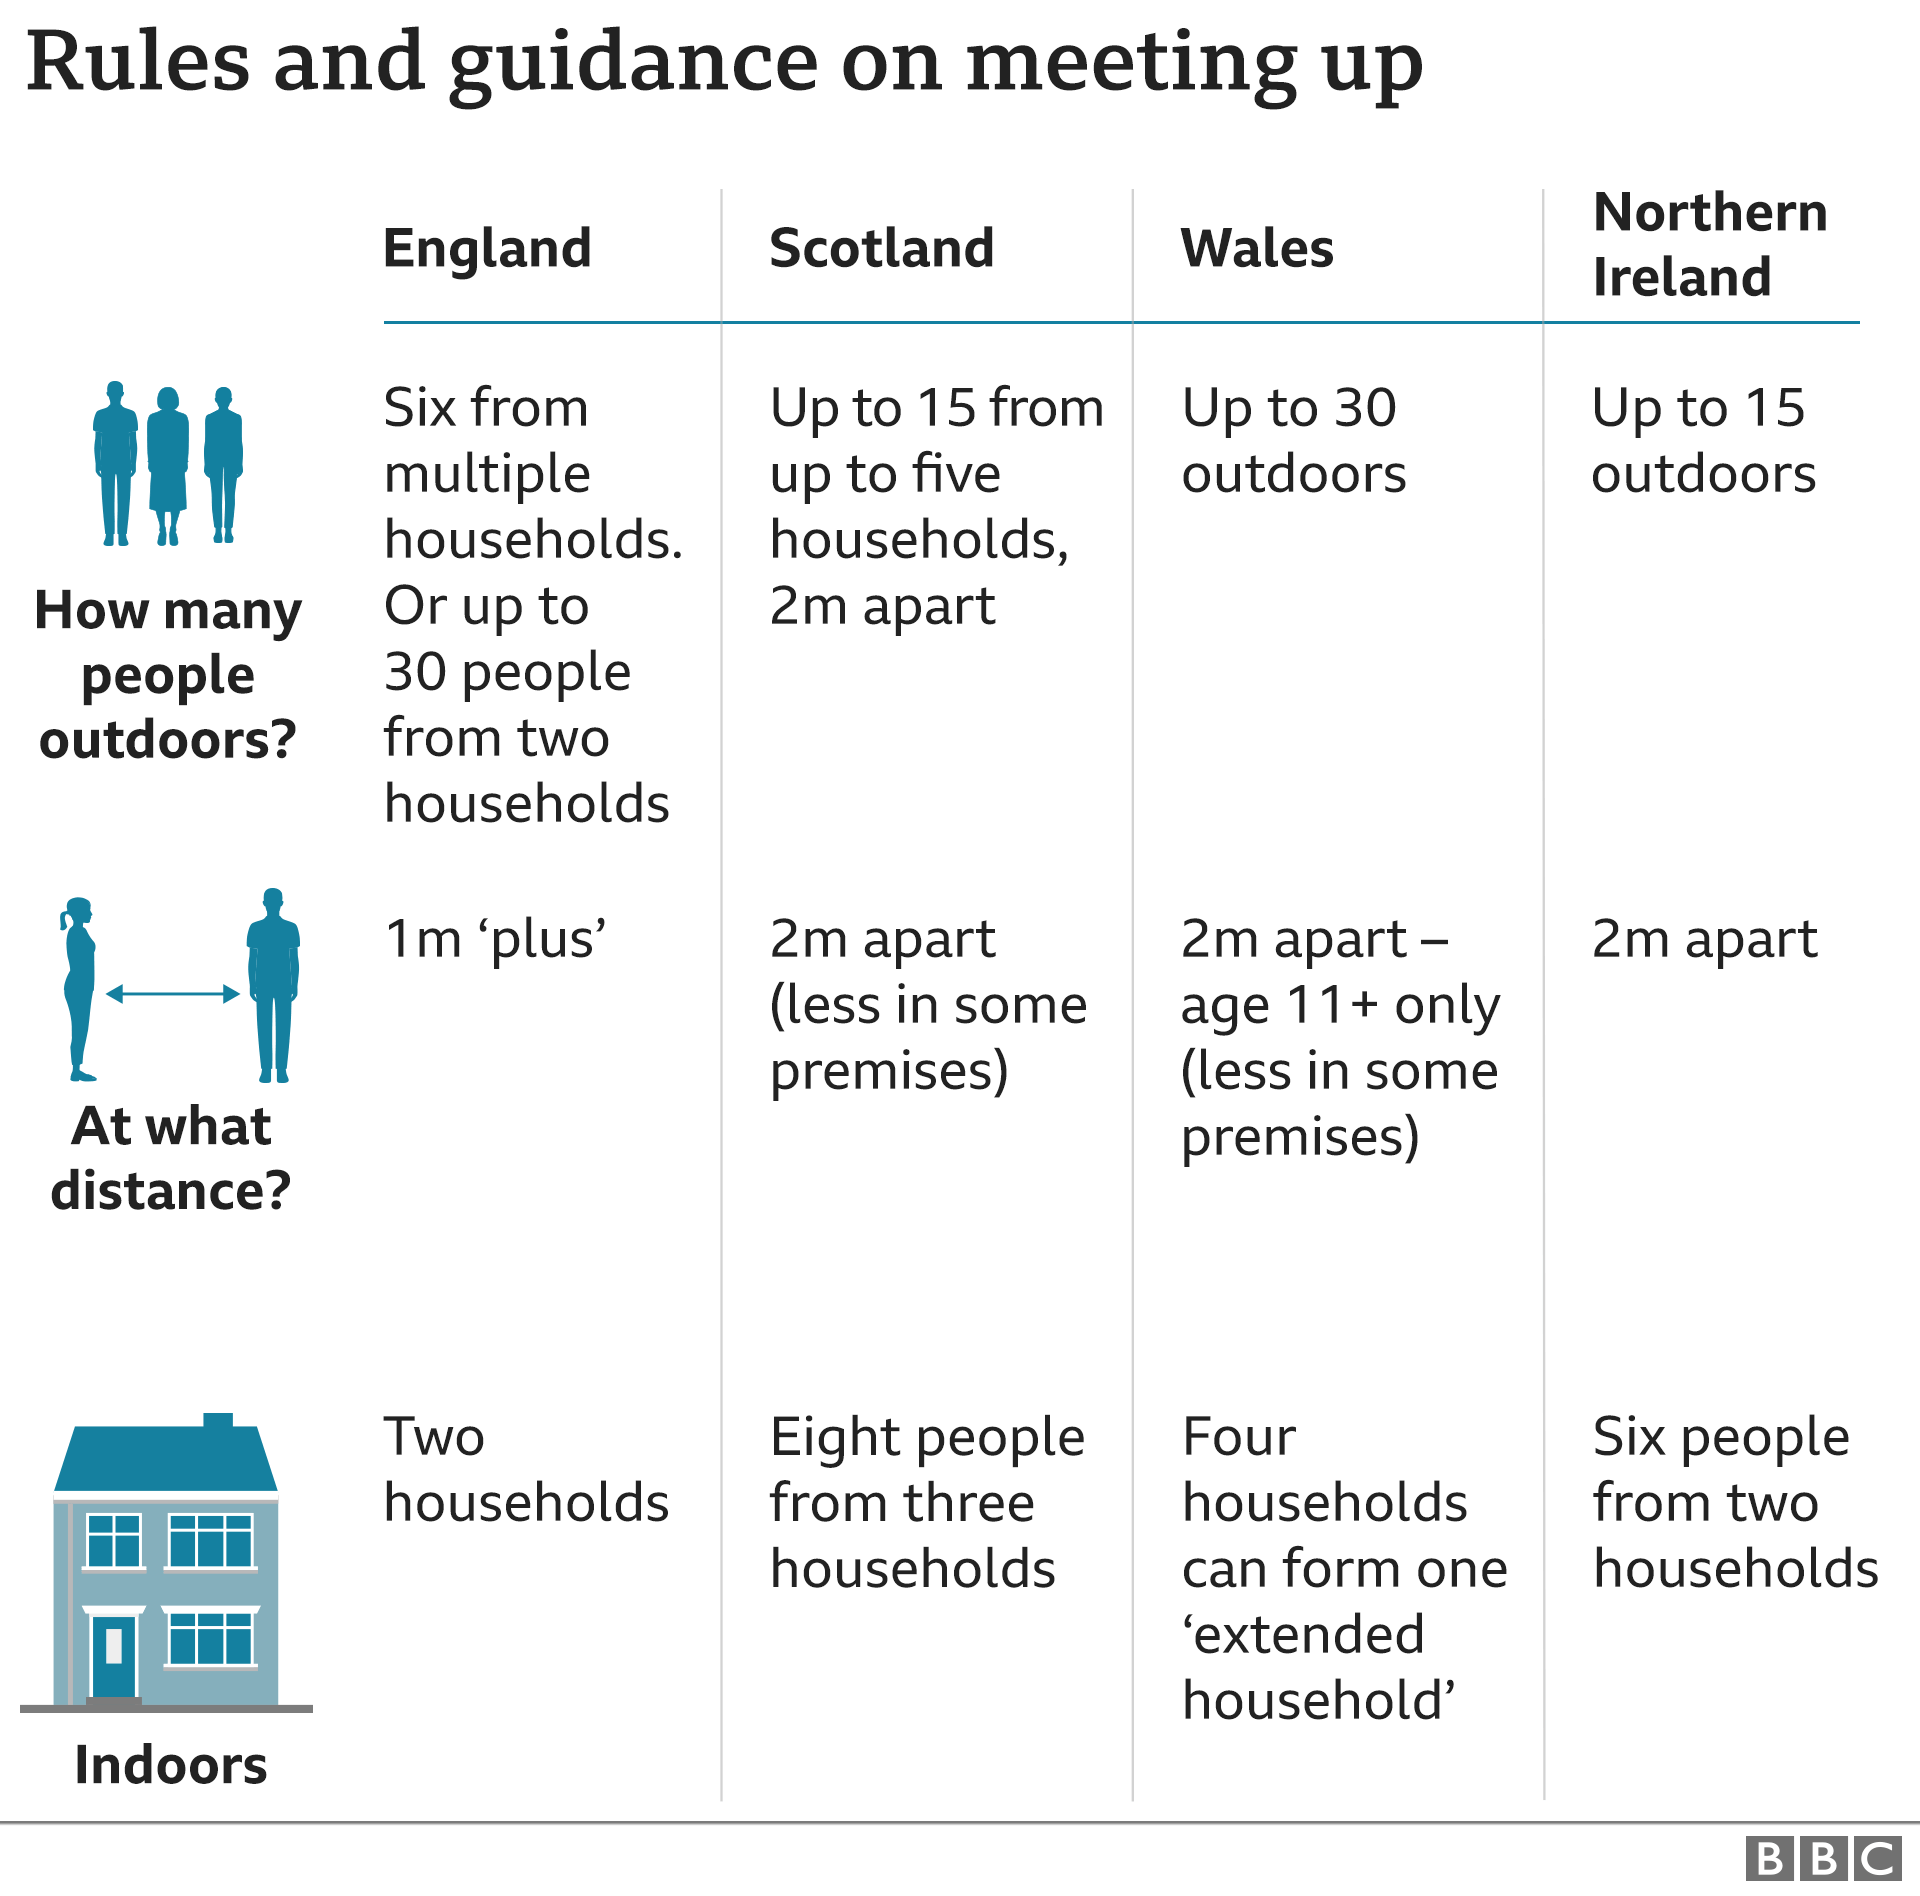 Rules and guidance meeting up - 7 Sept